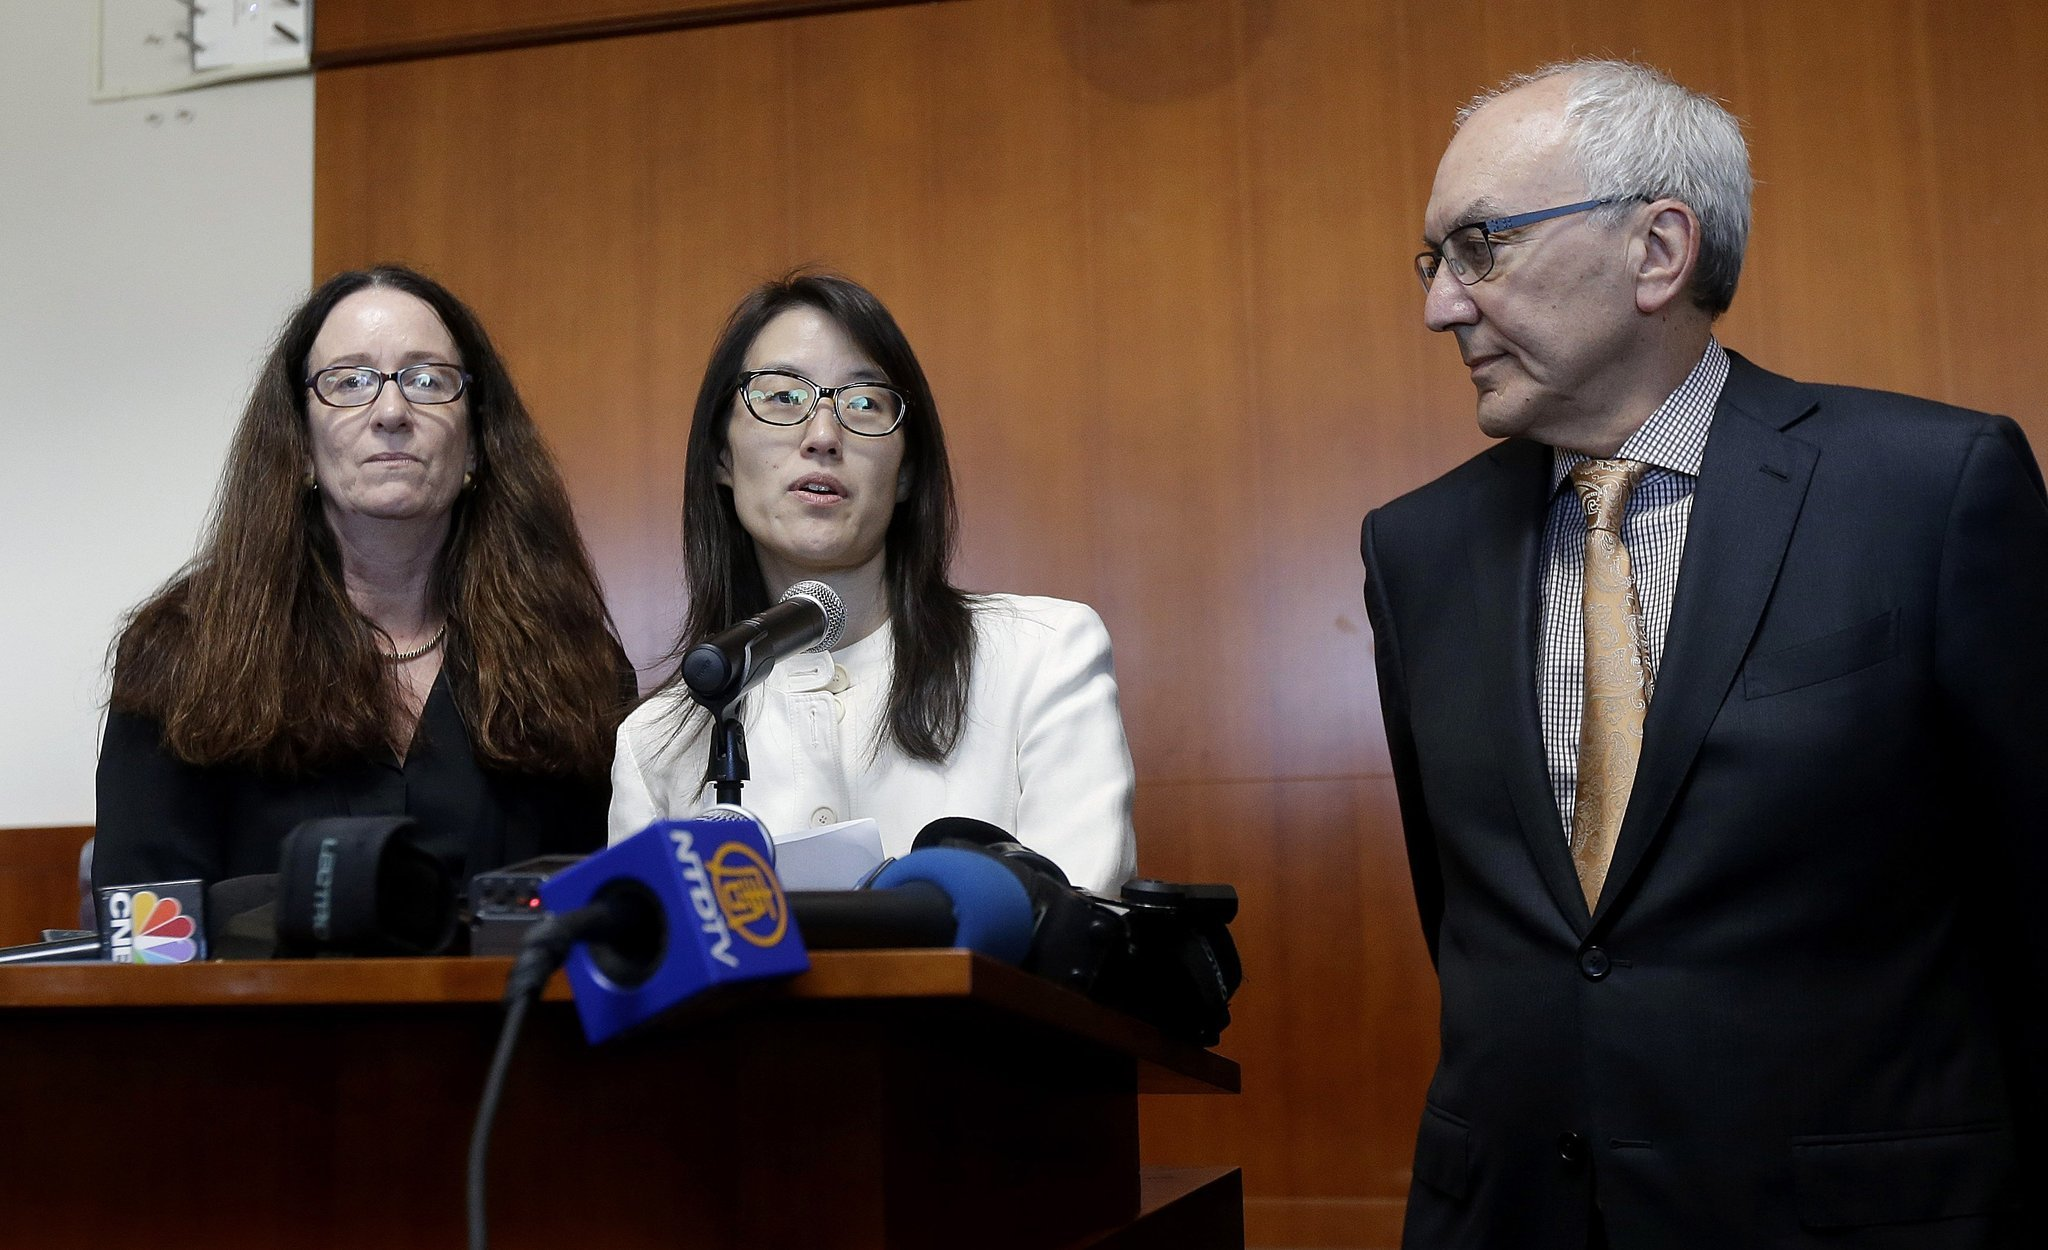 3 lingering questions after Ellen Pao's loss in Silicon Valley trial